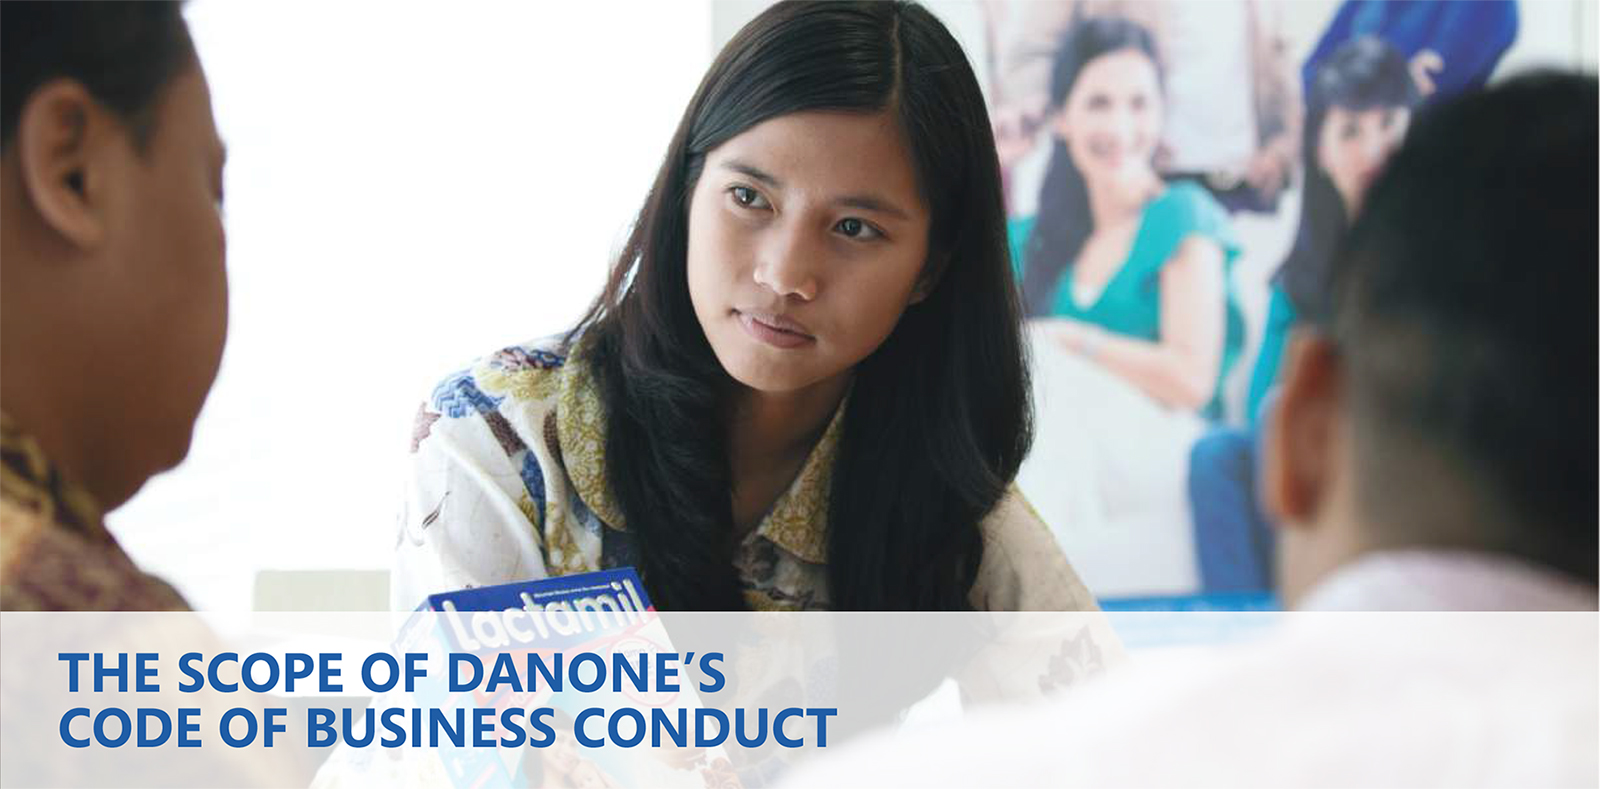 the scope of danone